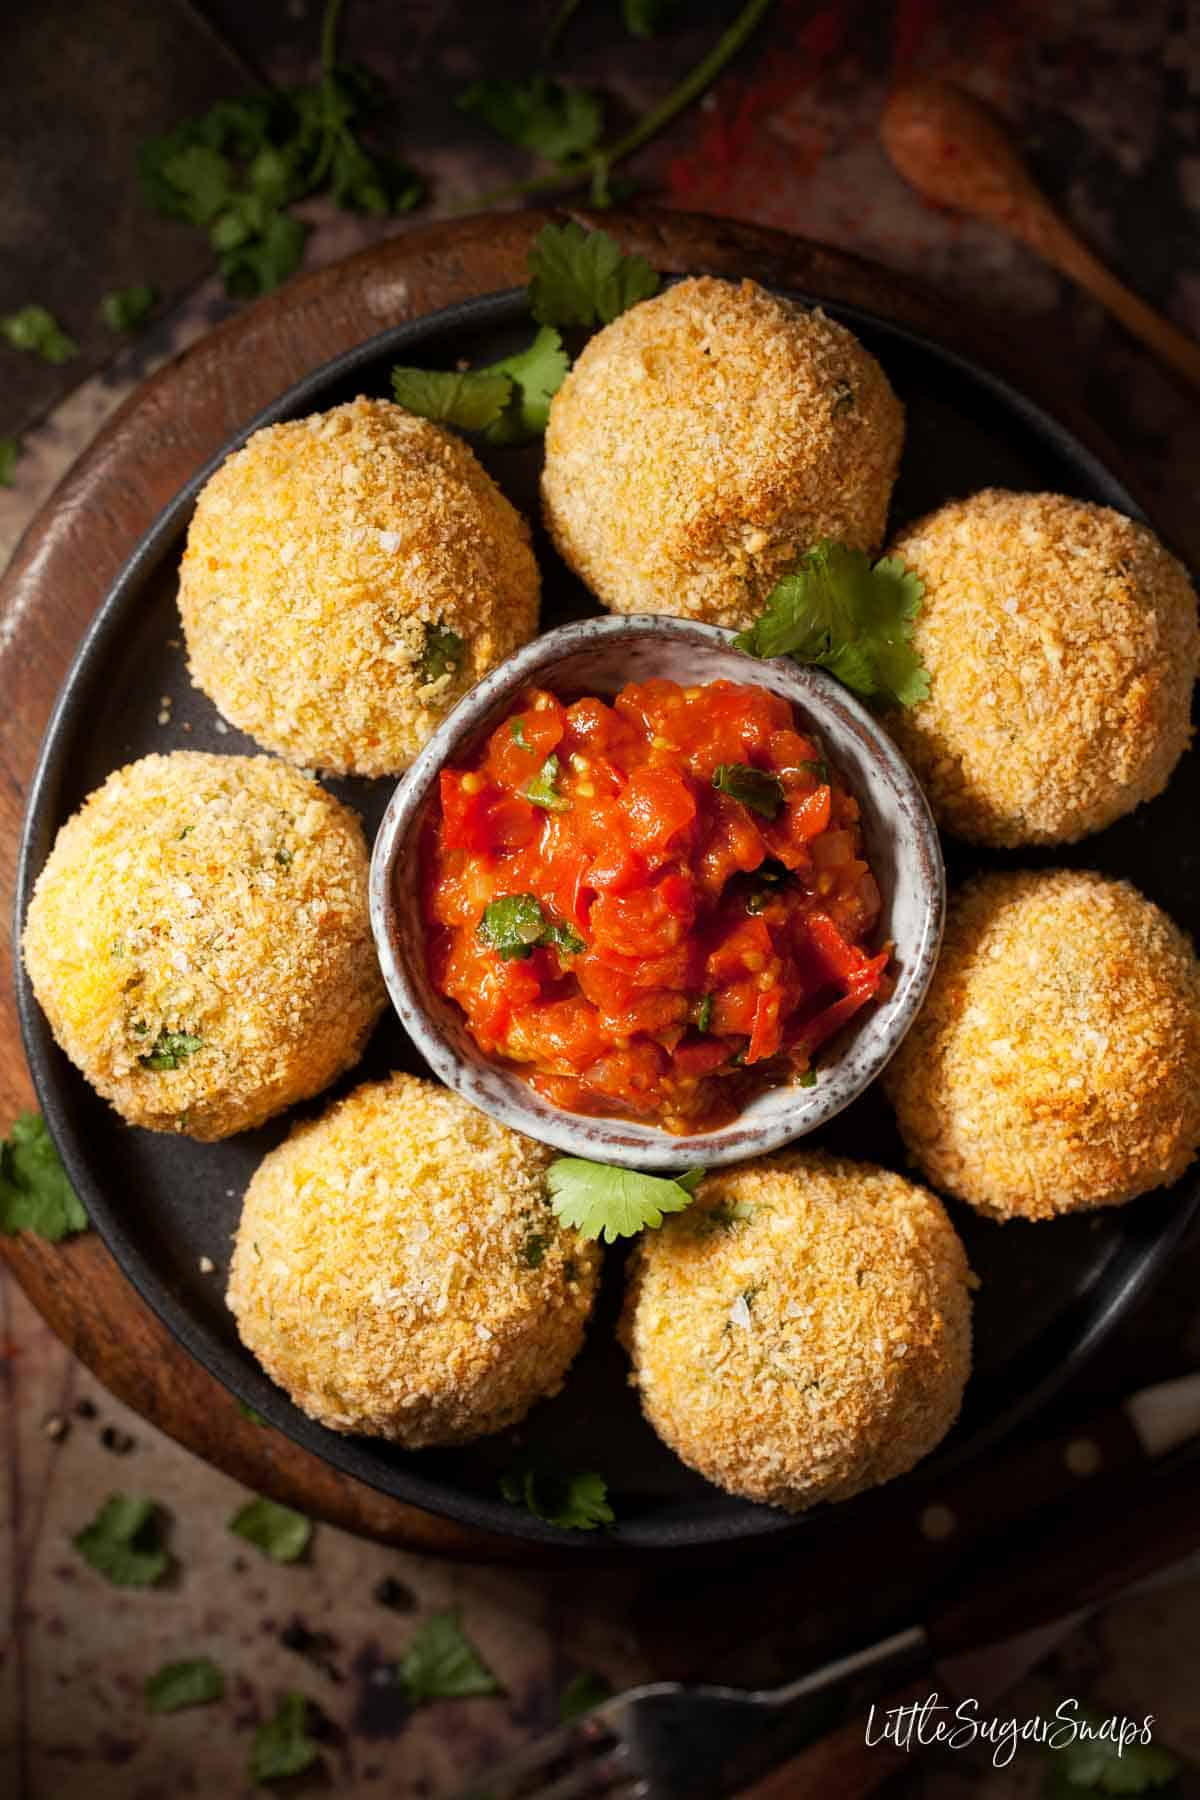 Fish cake balls on a plate with a bowl of spiced tomato sauce